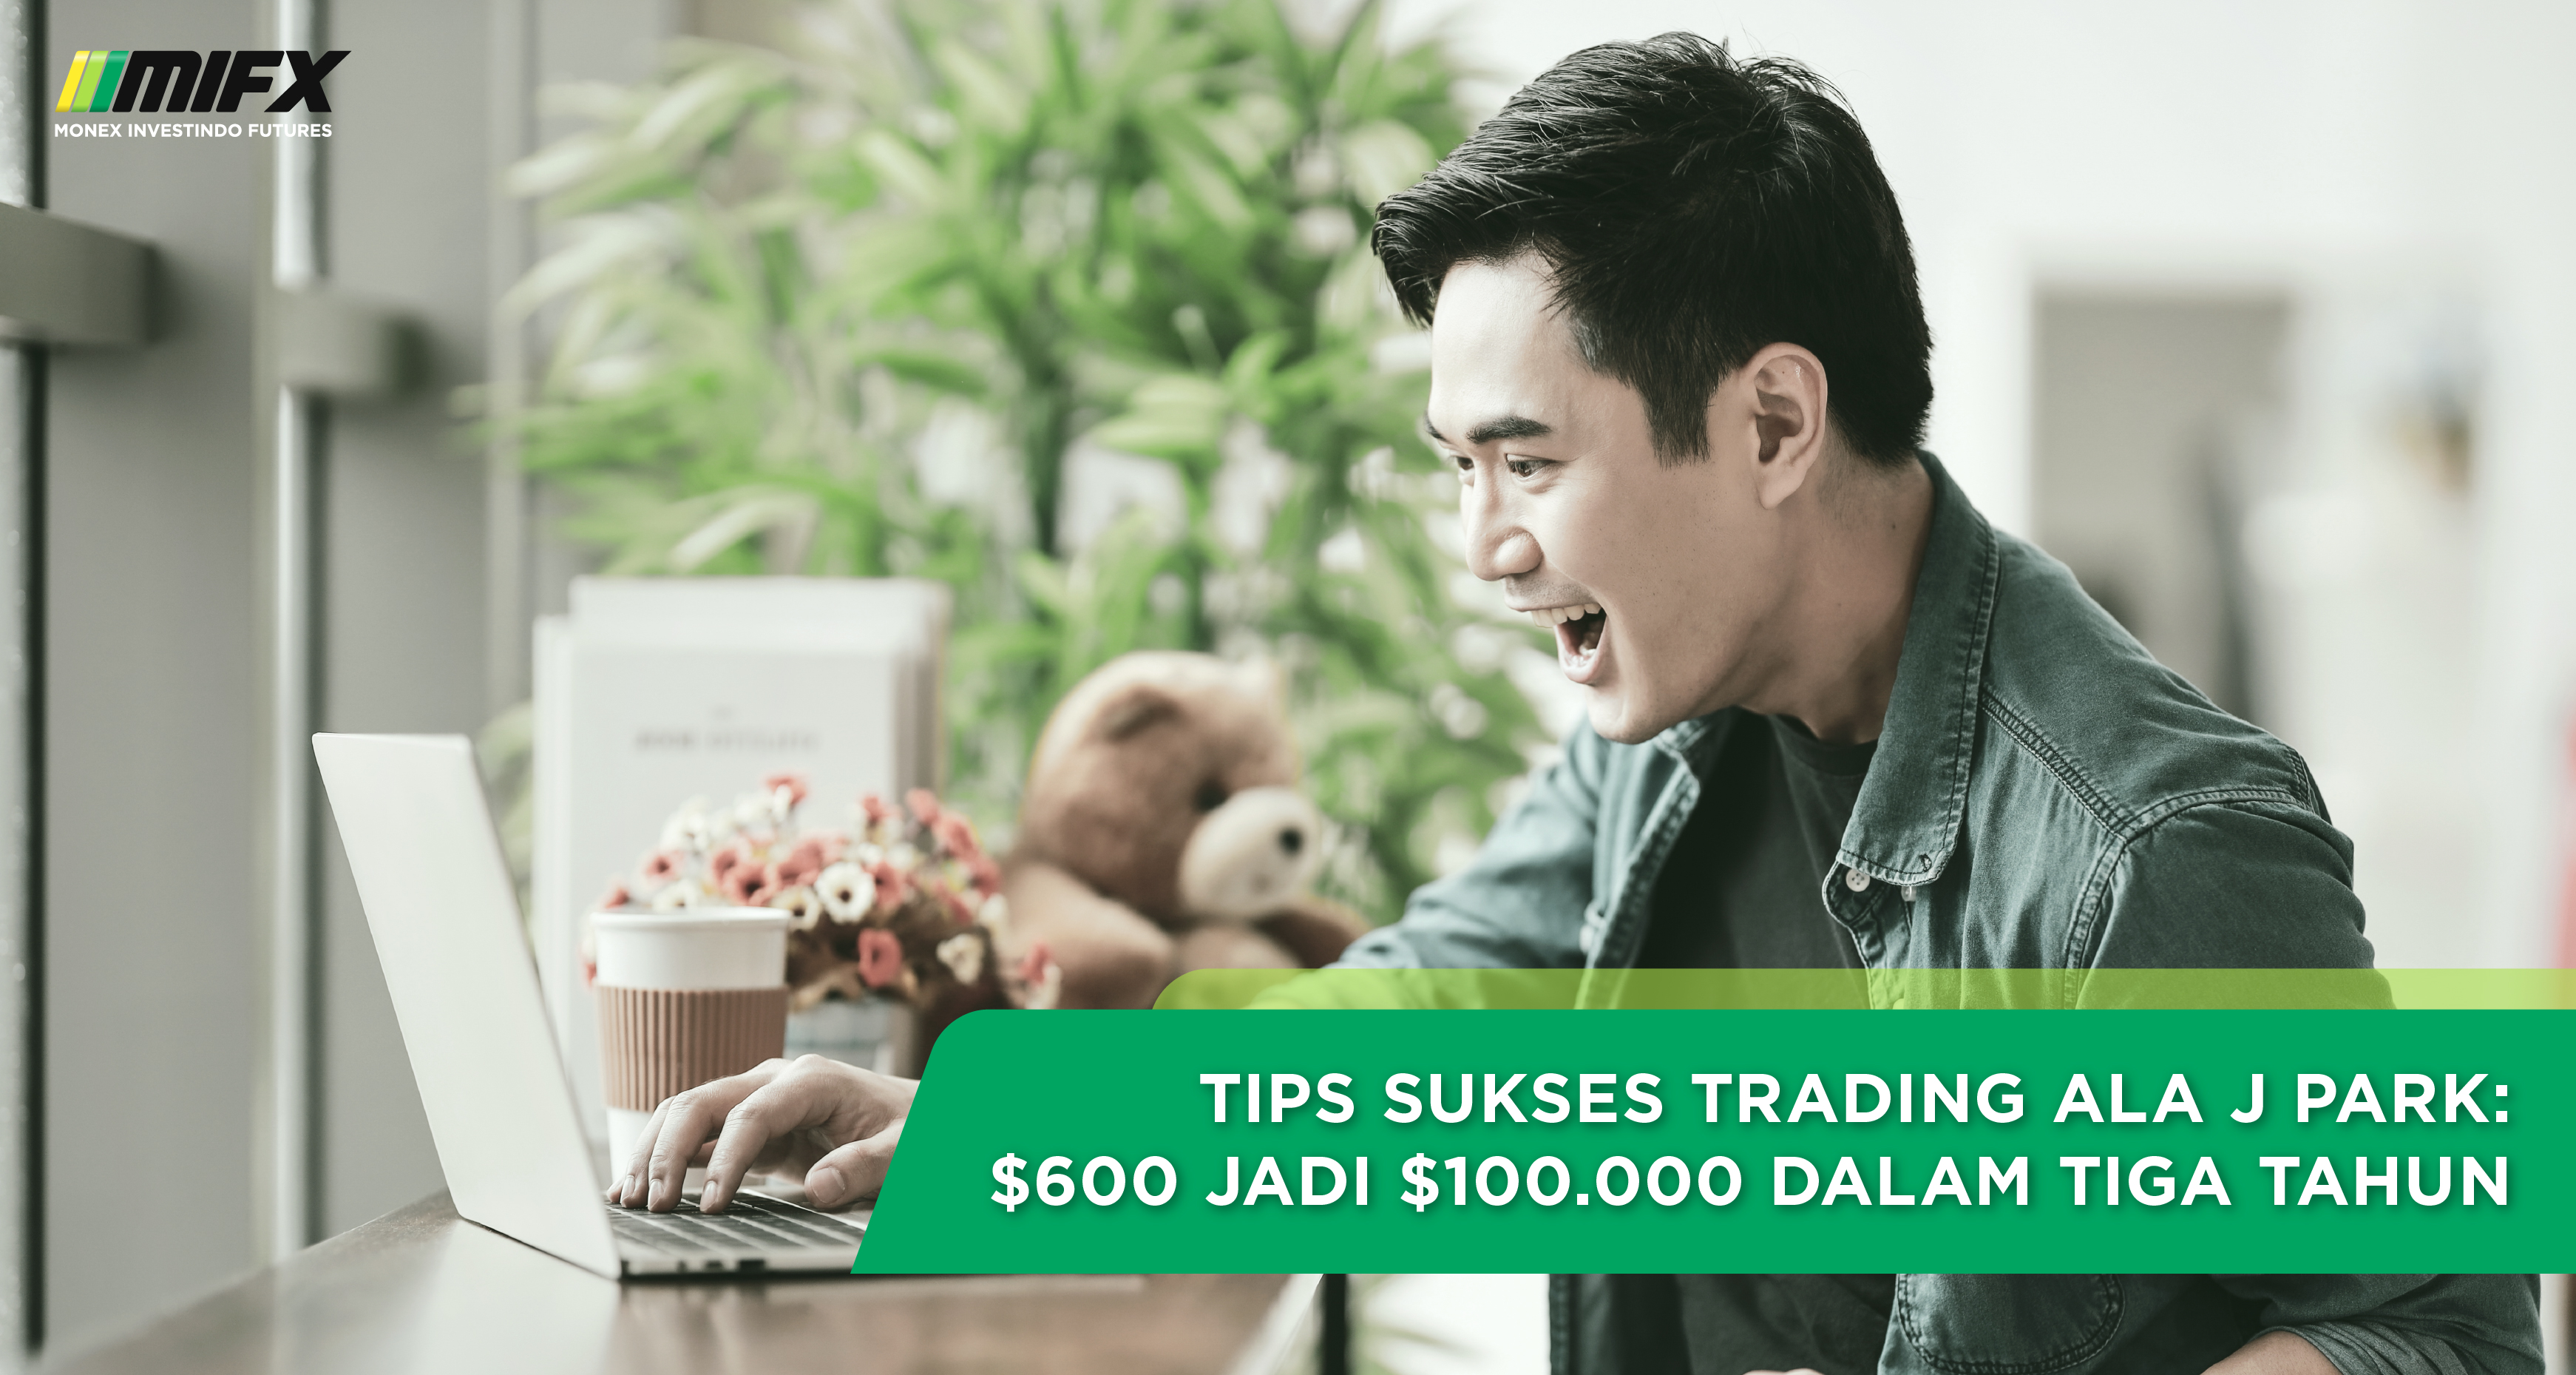 -article-05-tips-trading-jpark1603107233.jpg